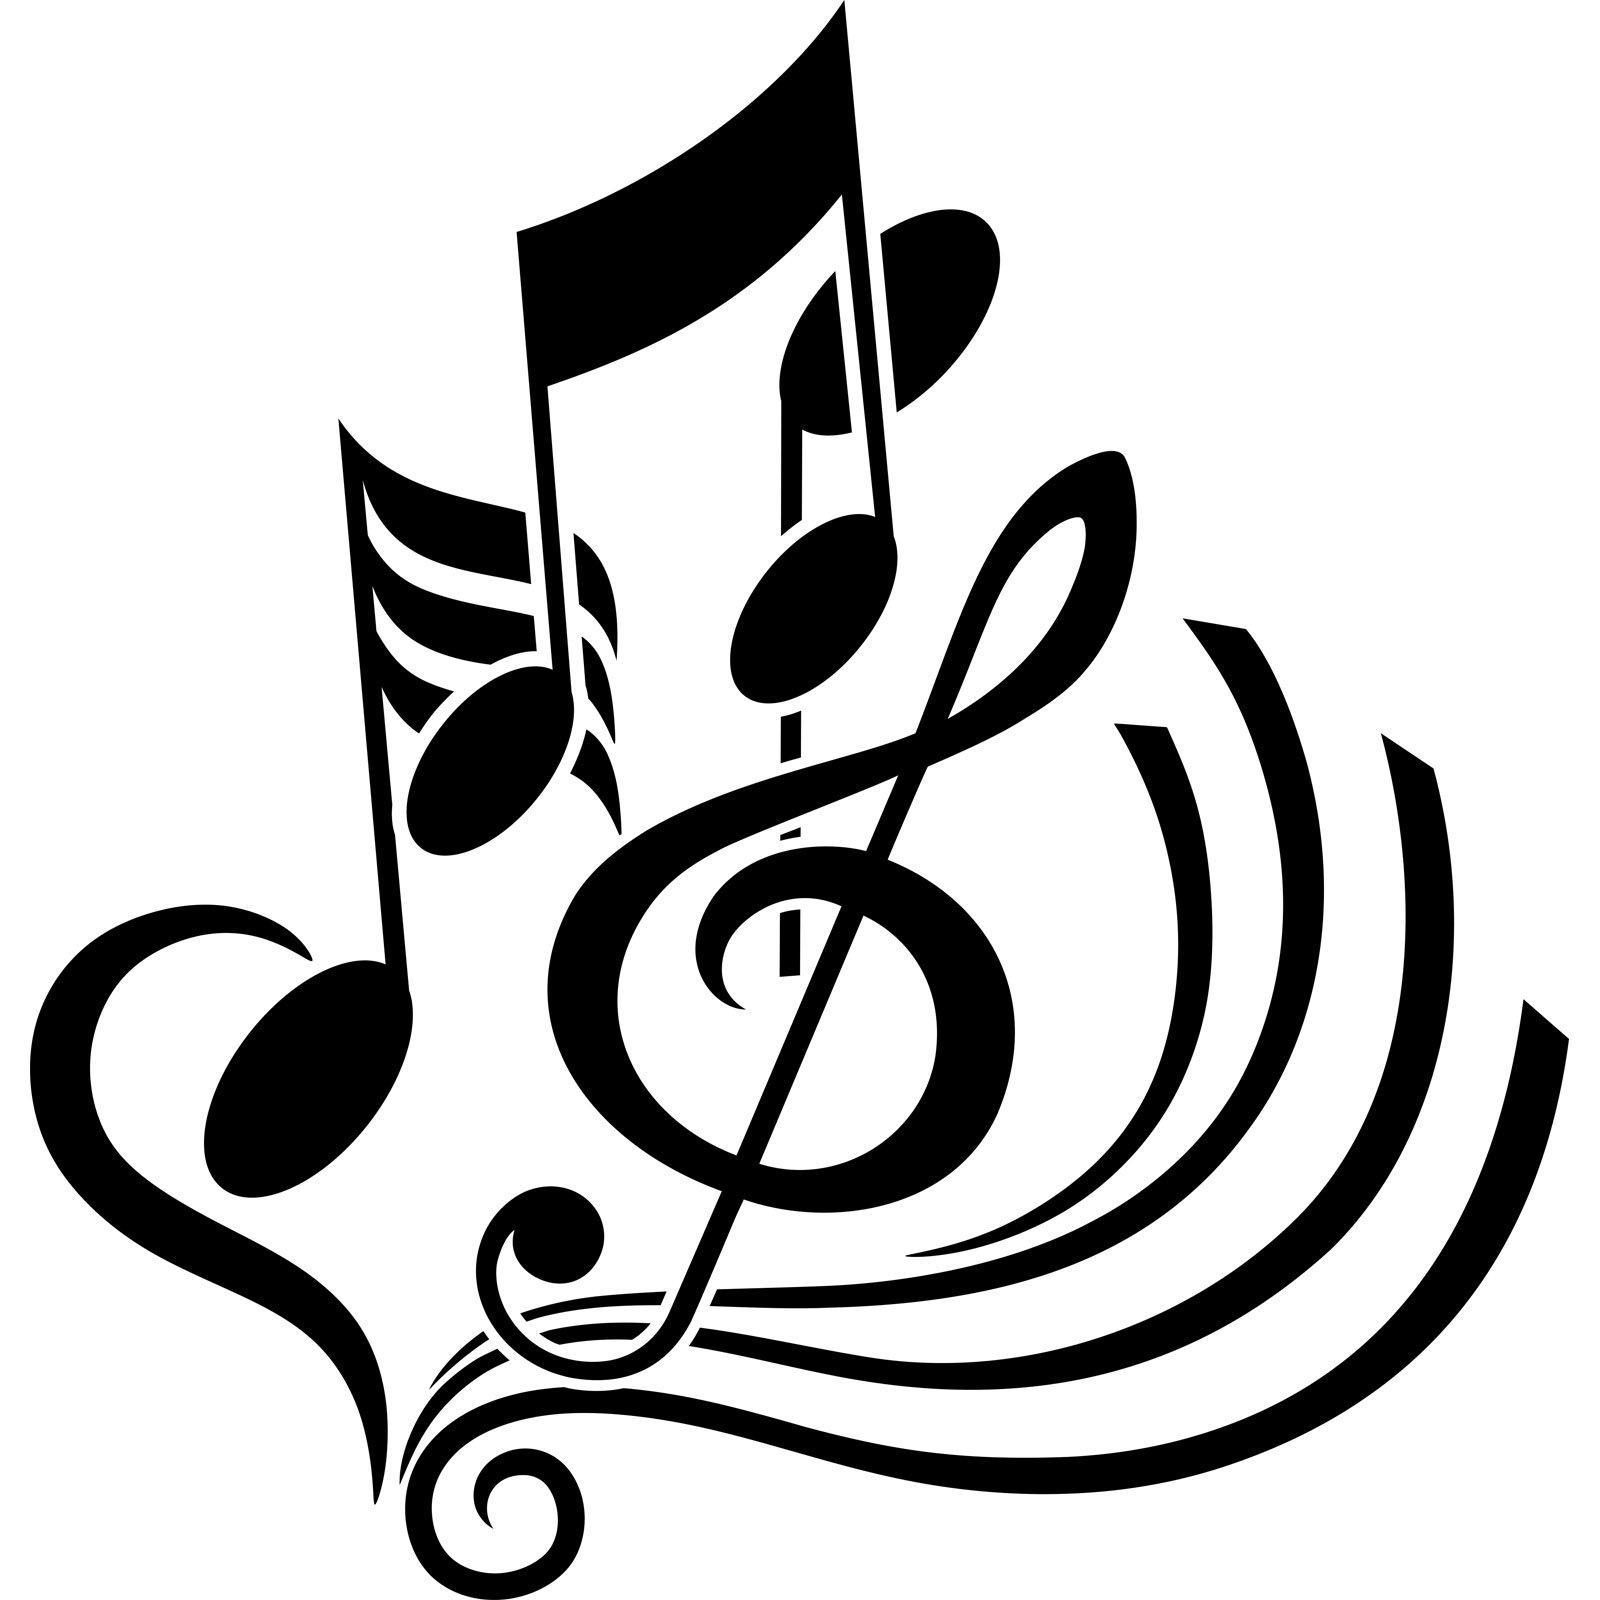 Treble Clef Notes Abstract Musical Wall Sticker Decal